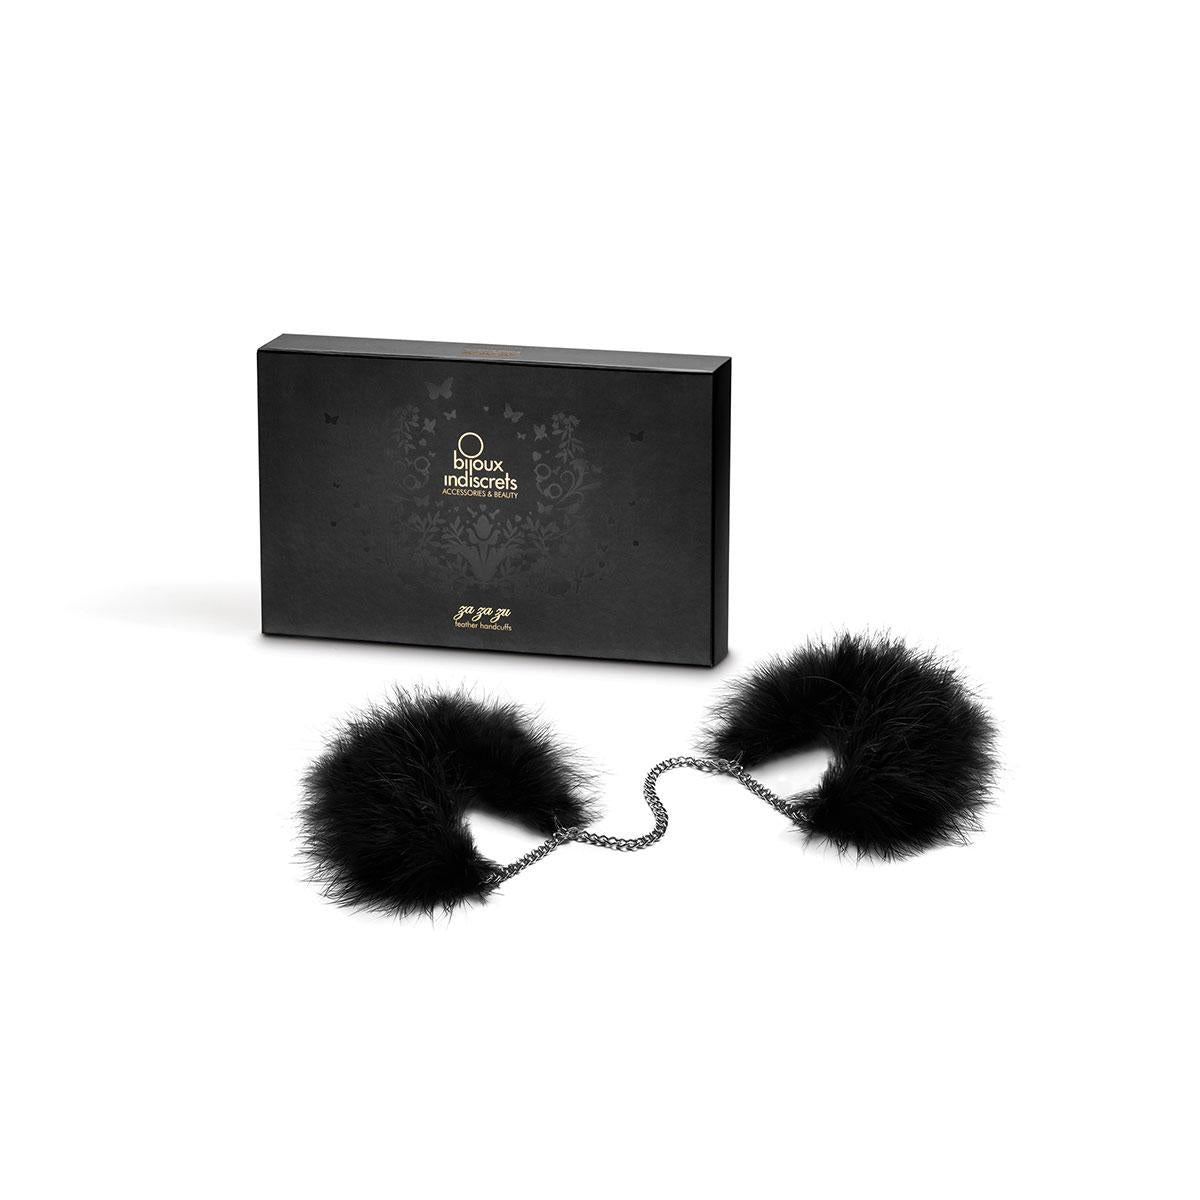 Bijoux Indiscrets Za za zu Feather Cuffs